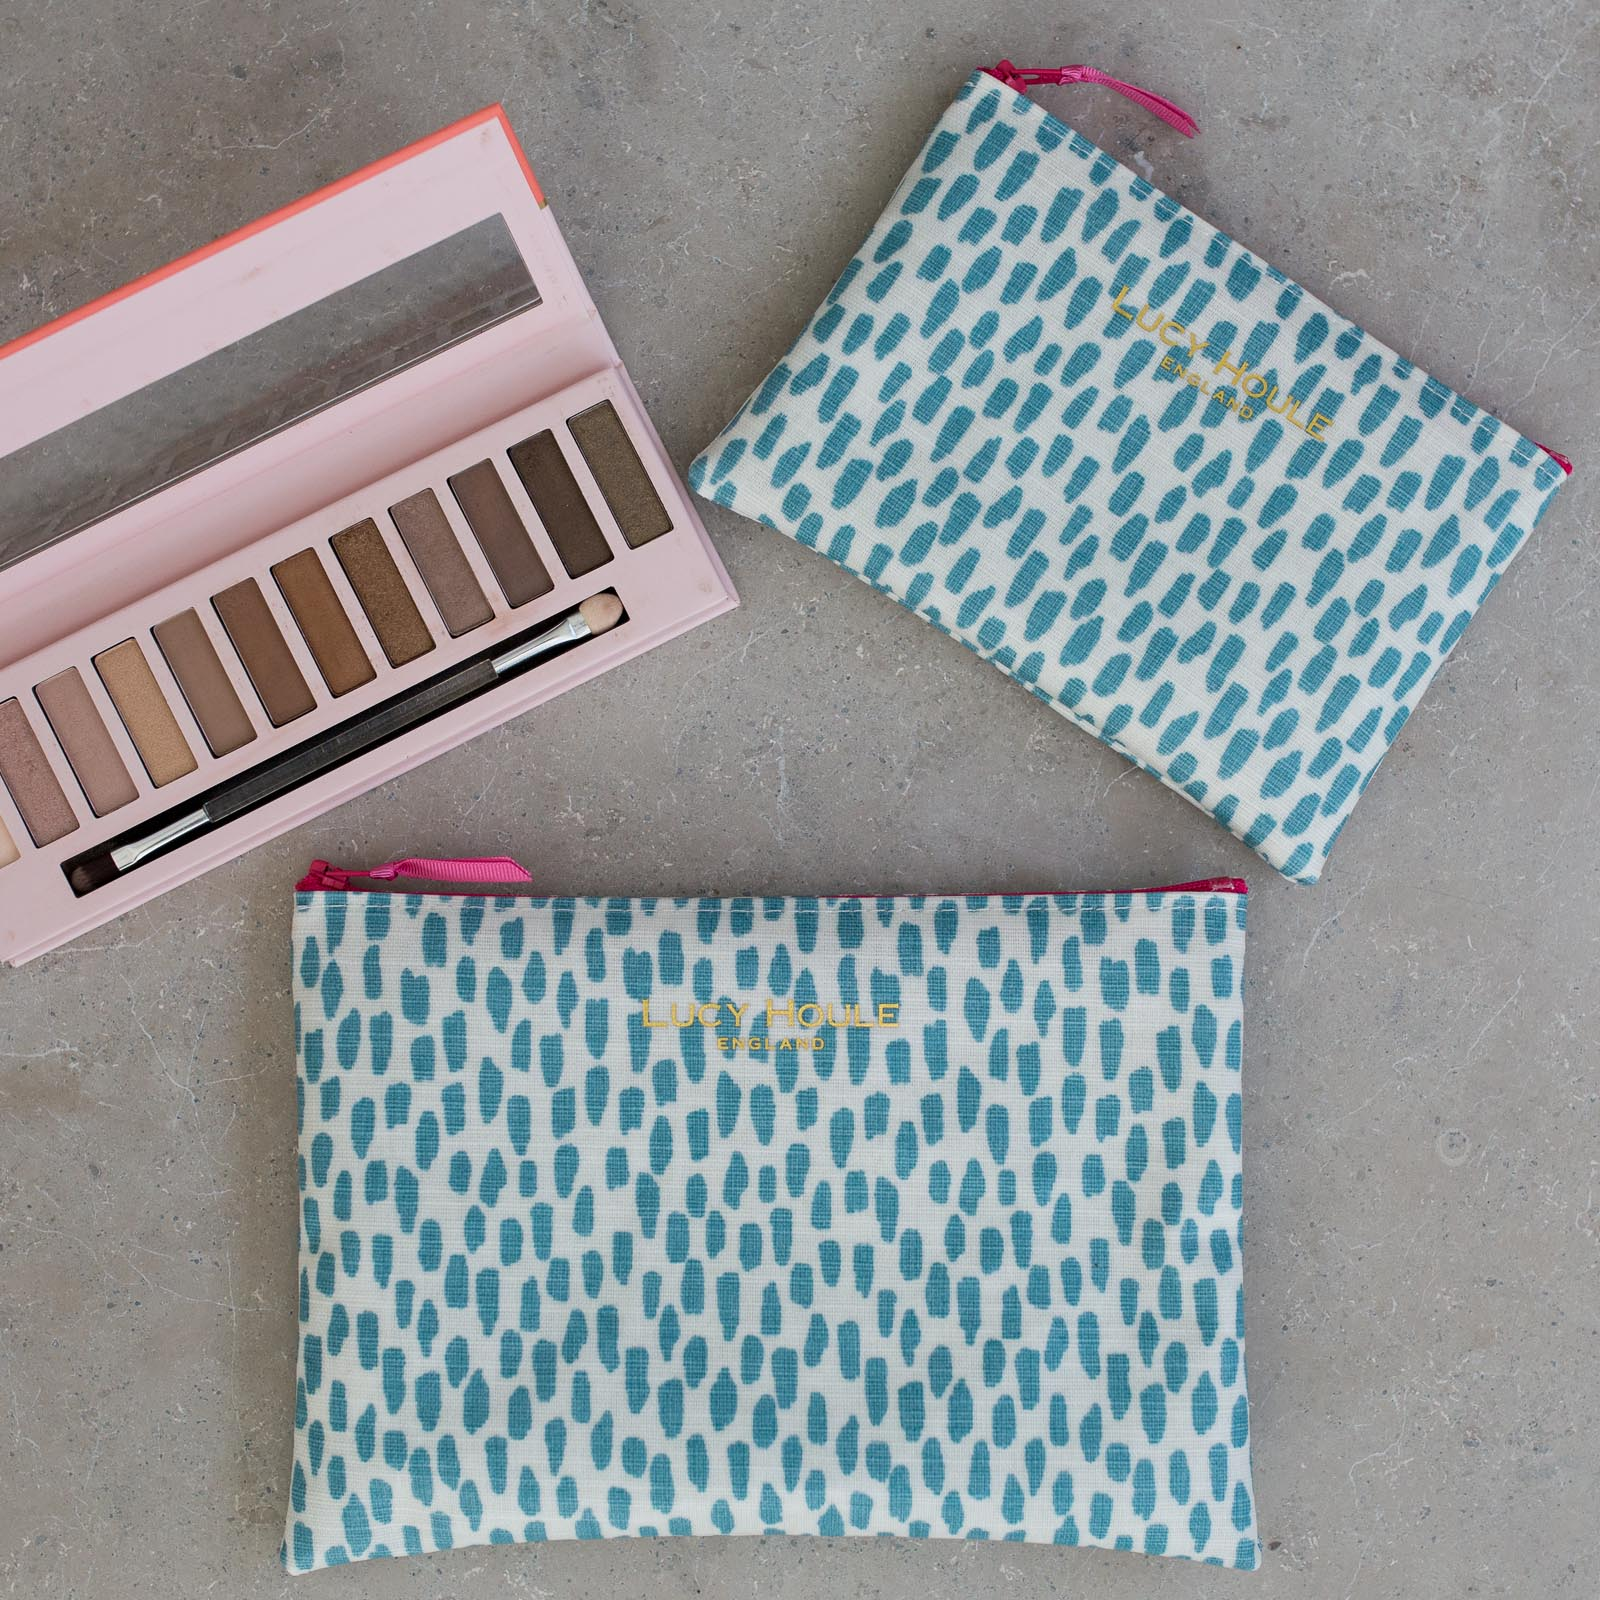 Aqua Cobblestone Make-Up Bag with Hot Pink Zip 'Limited Edition'